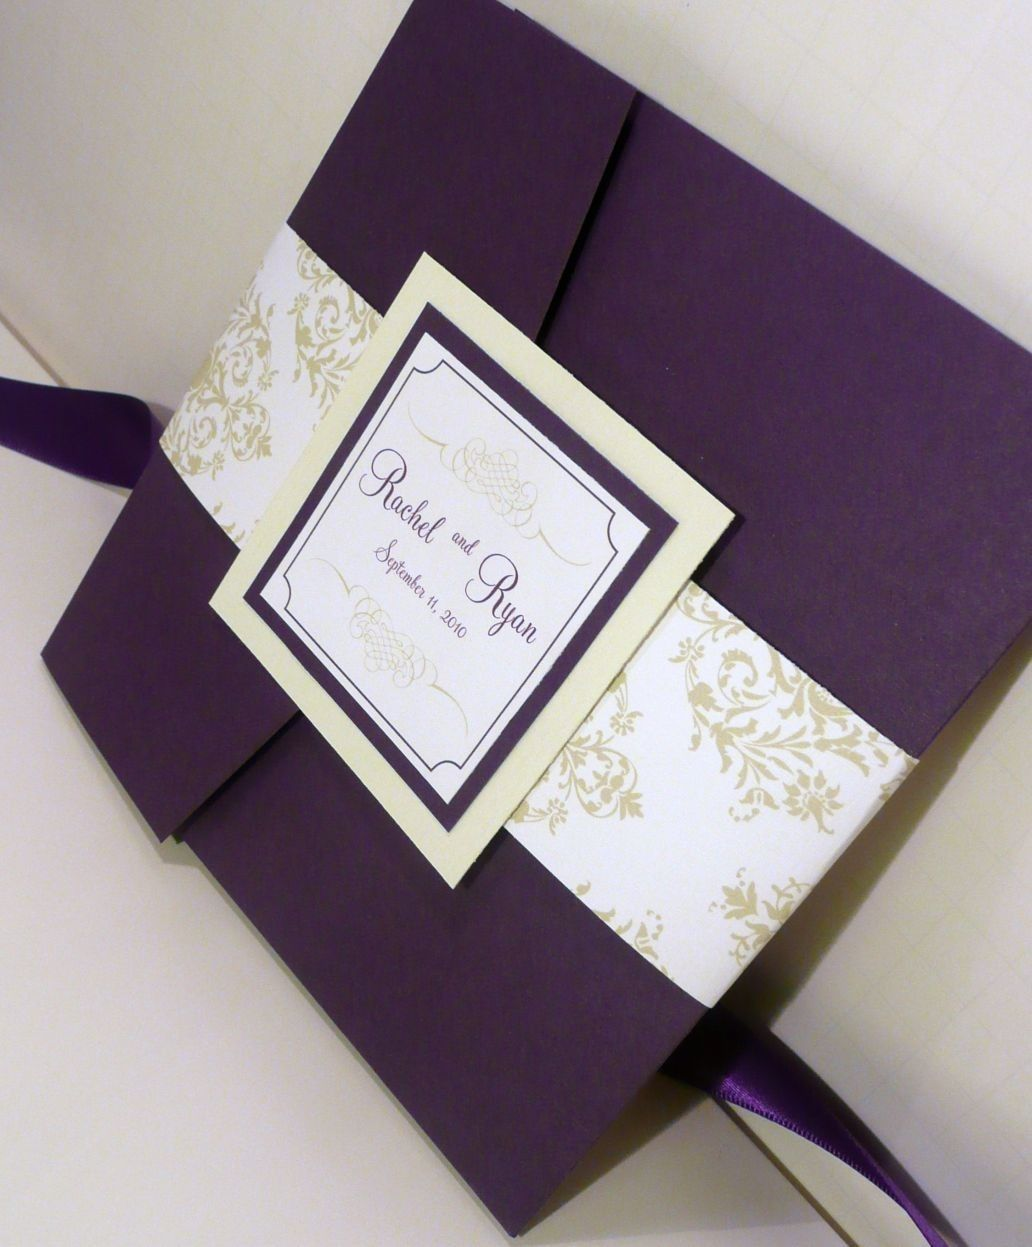 Pocketfold wedding invitation dark purple invites mint and jadore damask wedding invitation purple and chartreuse pocketfold sample 600 via etsy stopboris Image collections